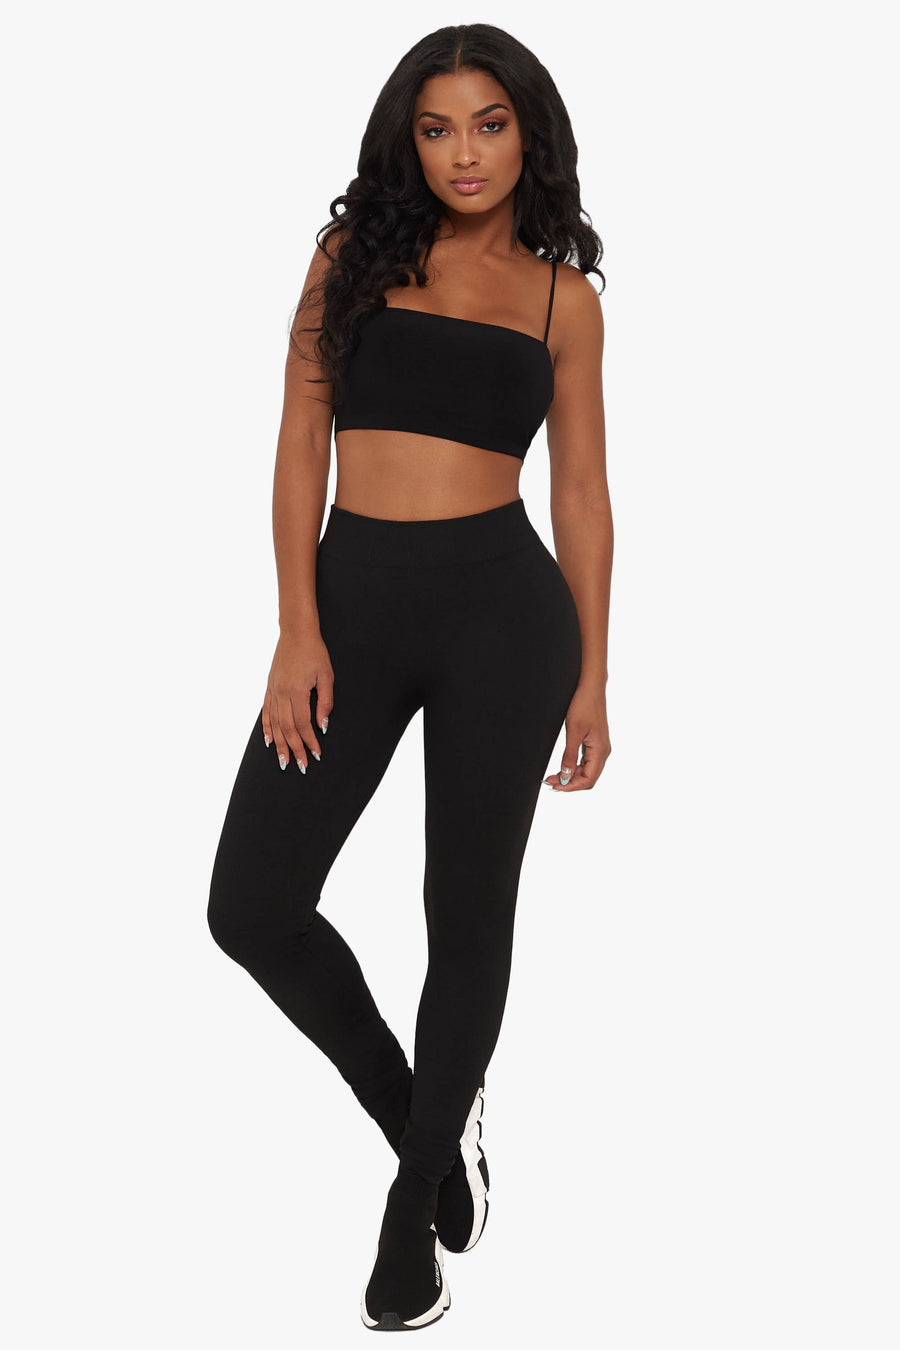 Stay Fleece Seamless Leggings